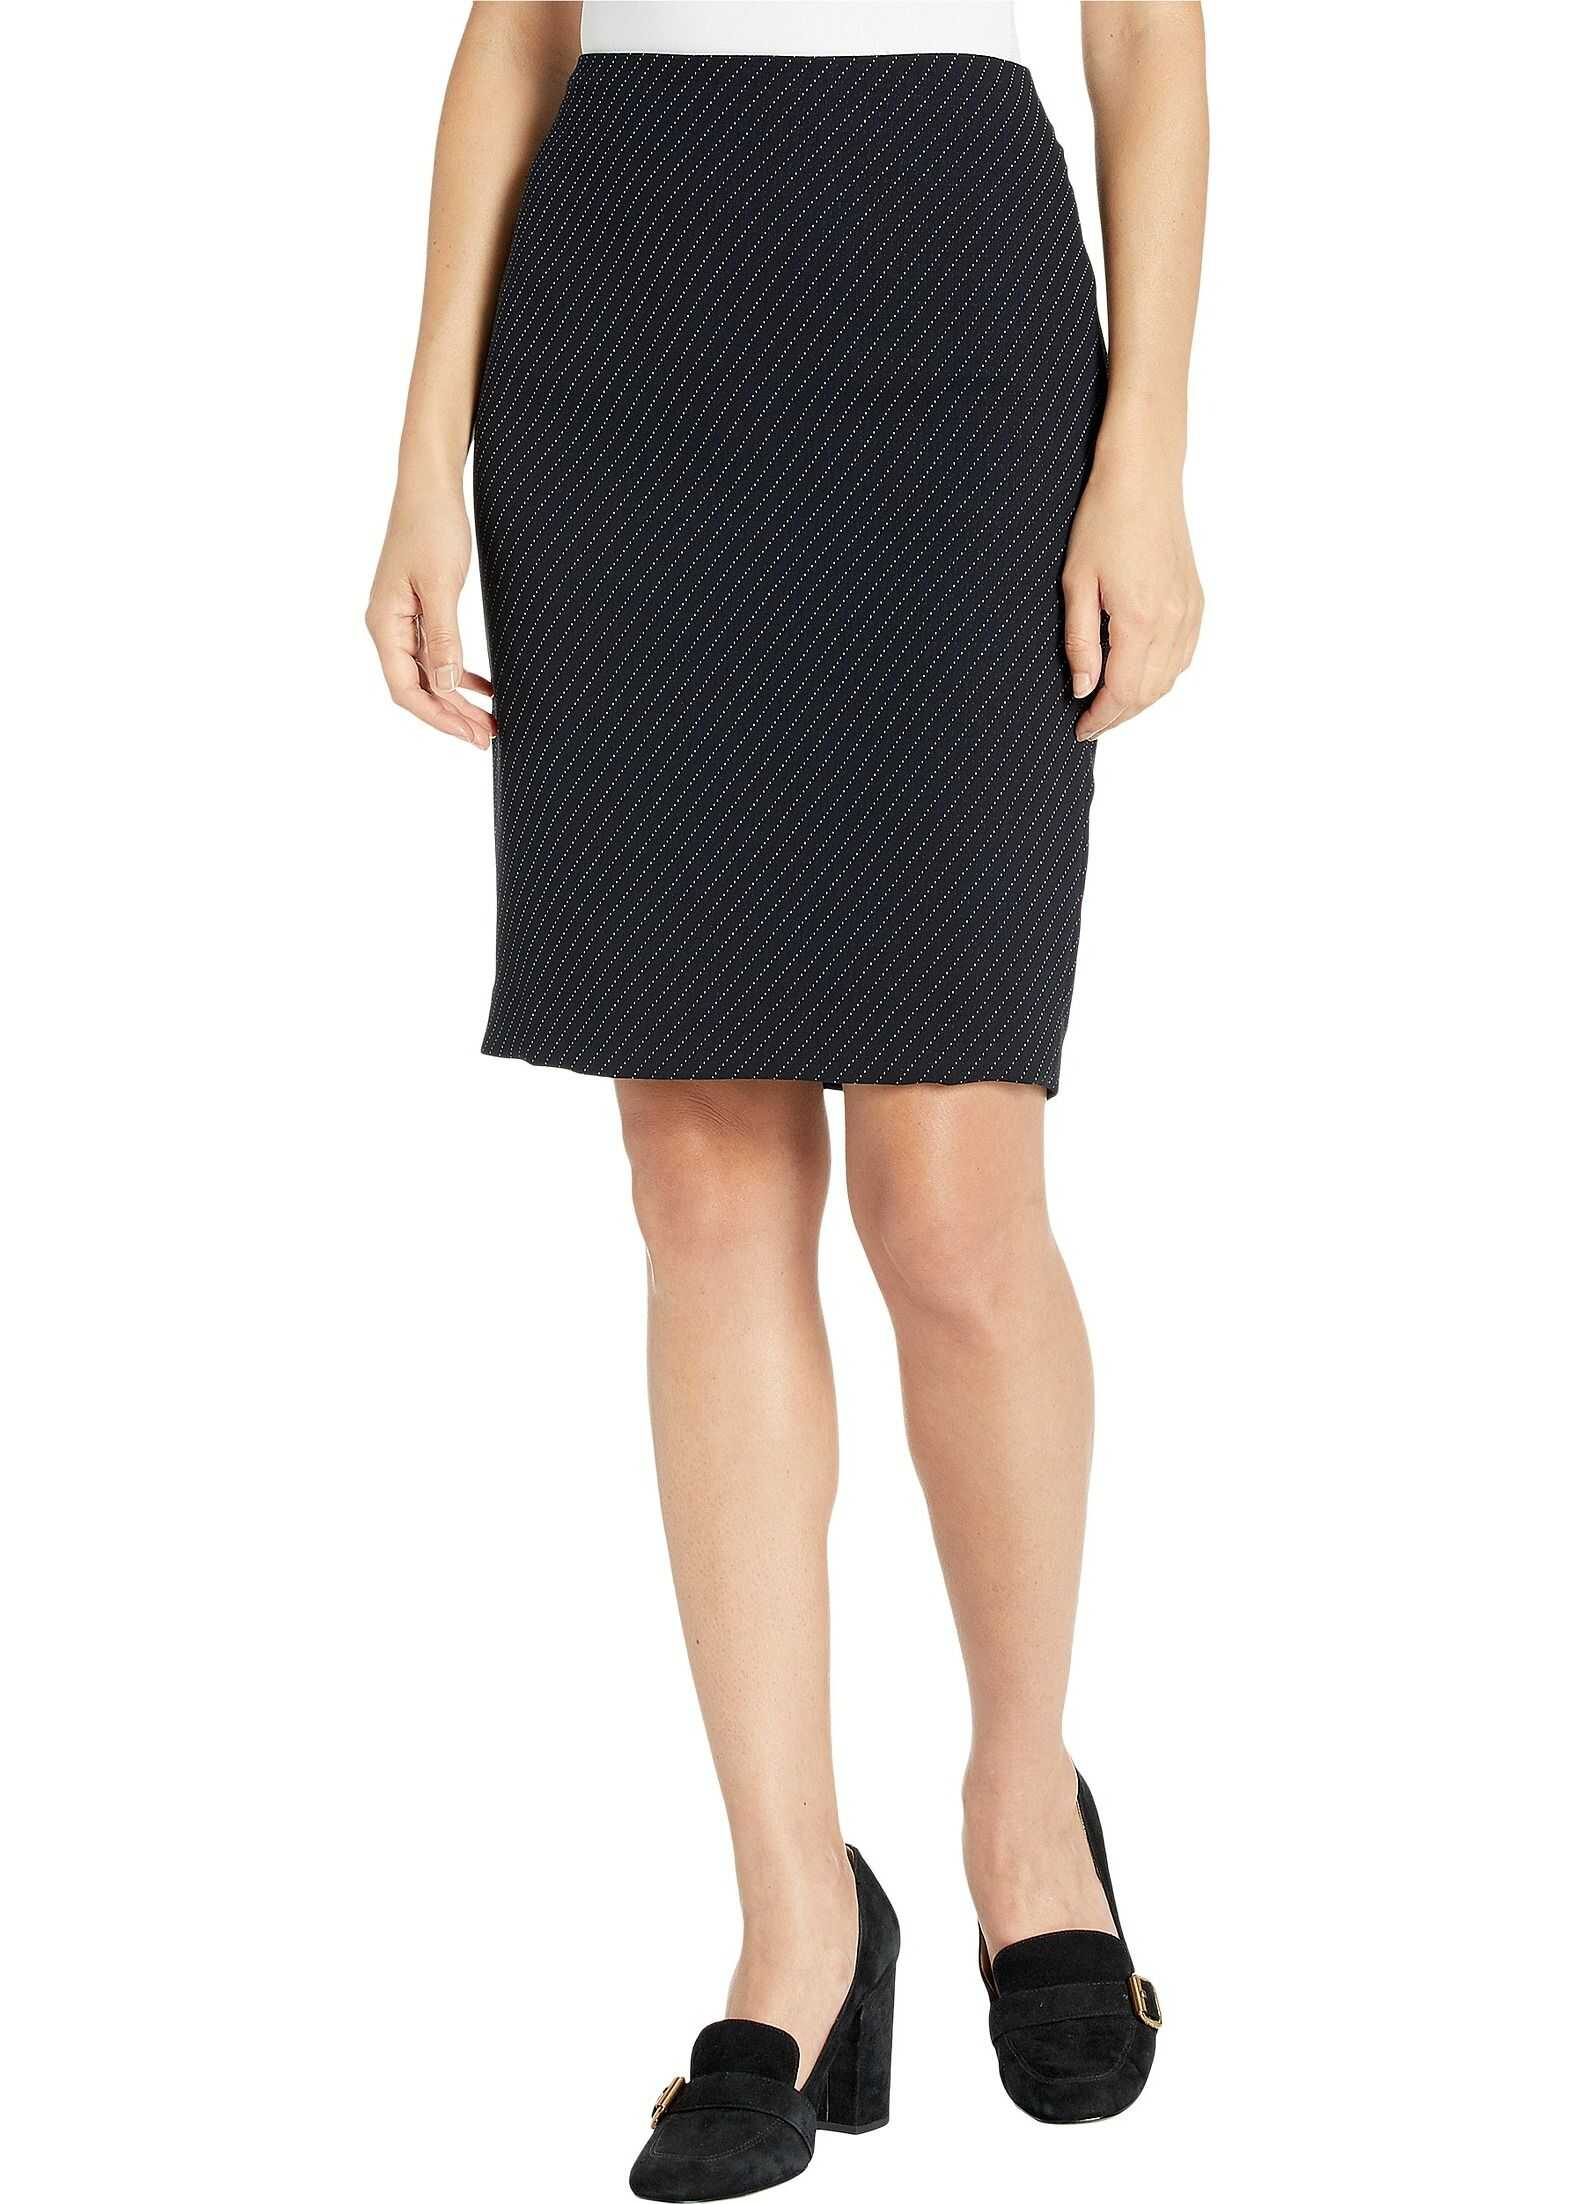 Calvin Klein Novelty Skirt Navy/White